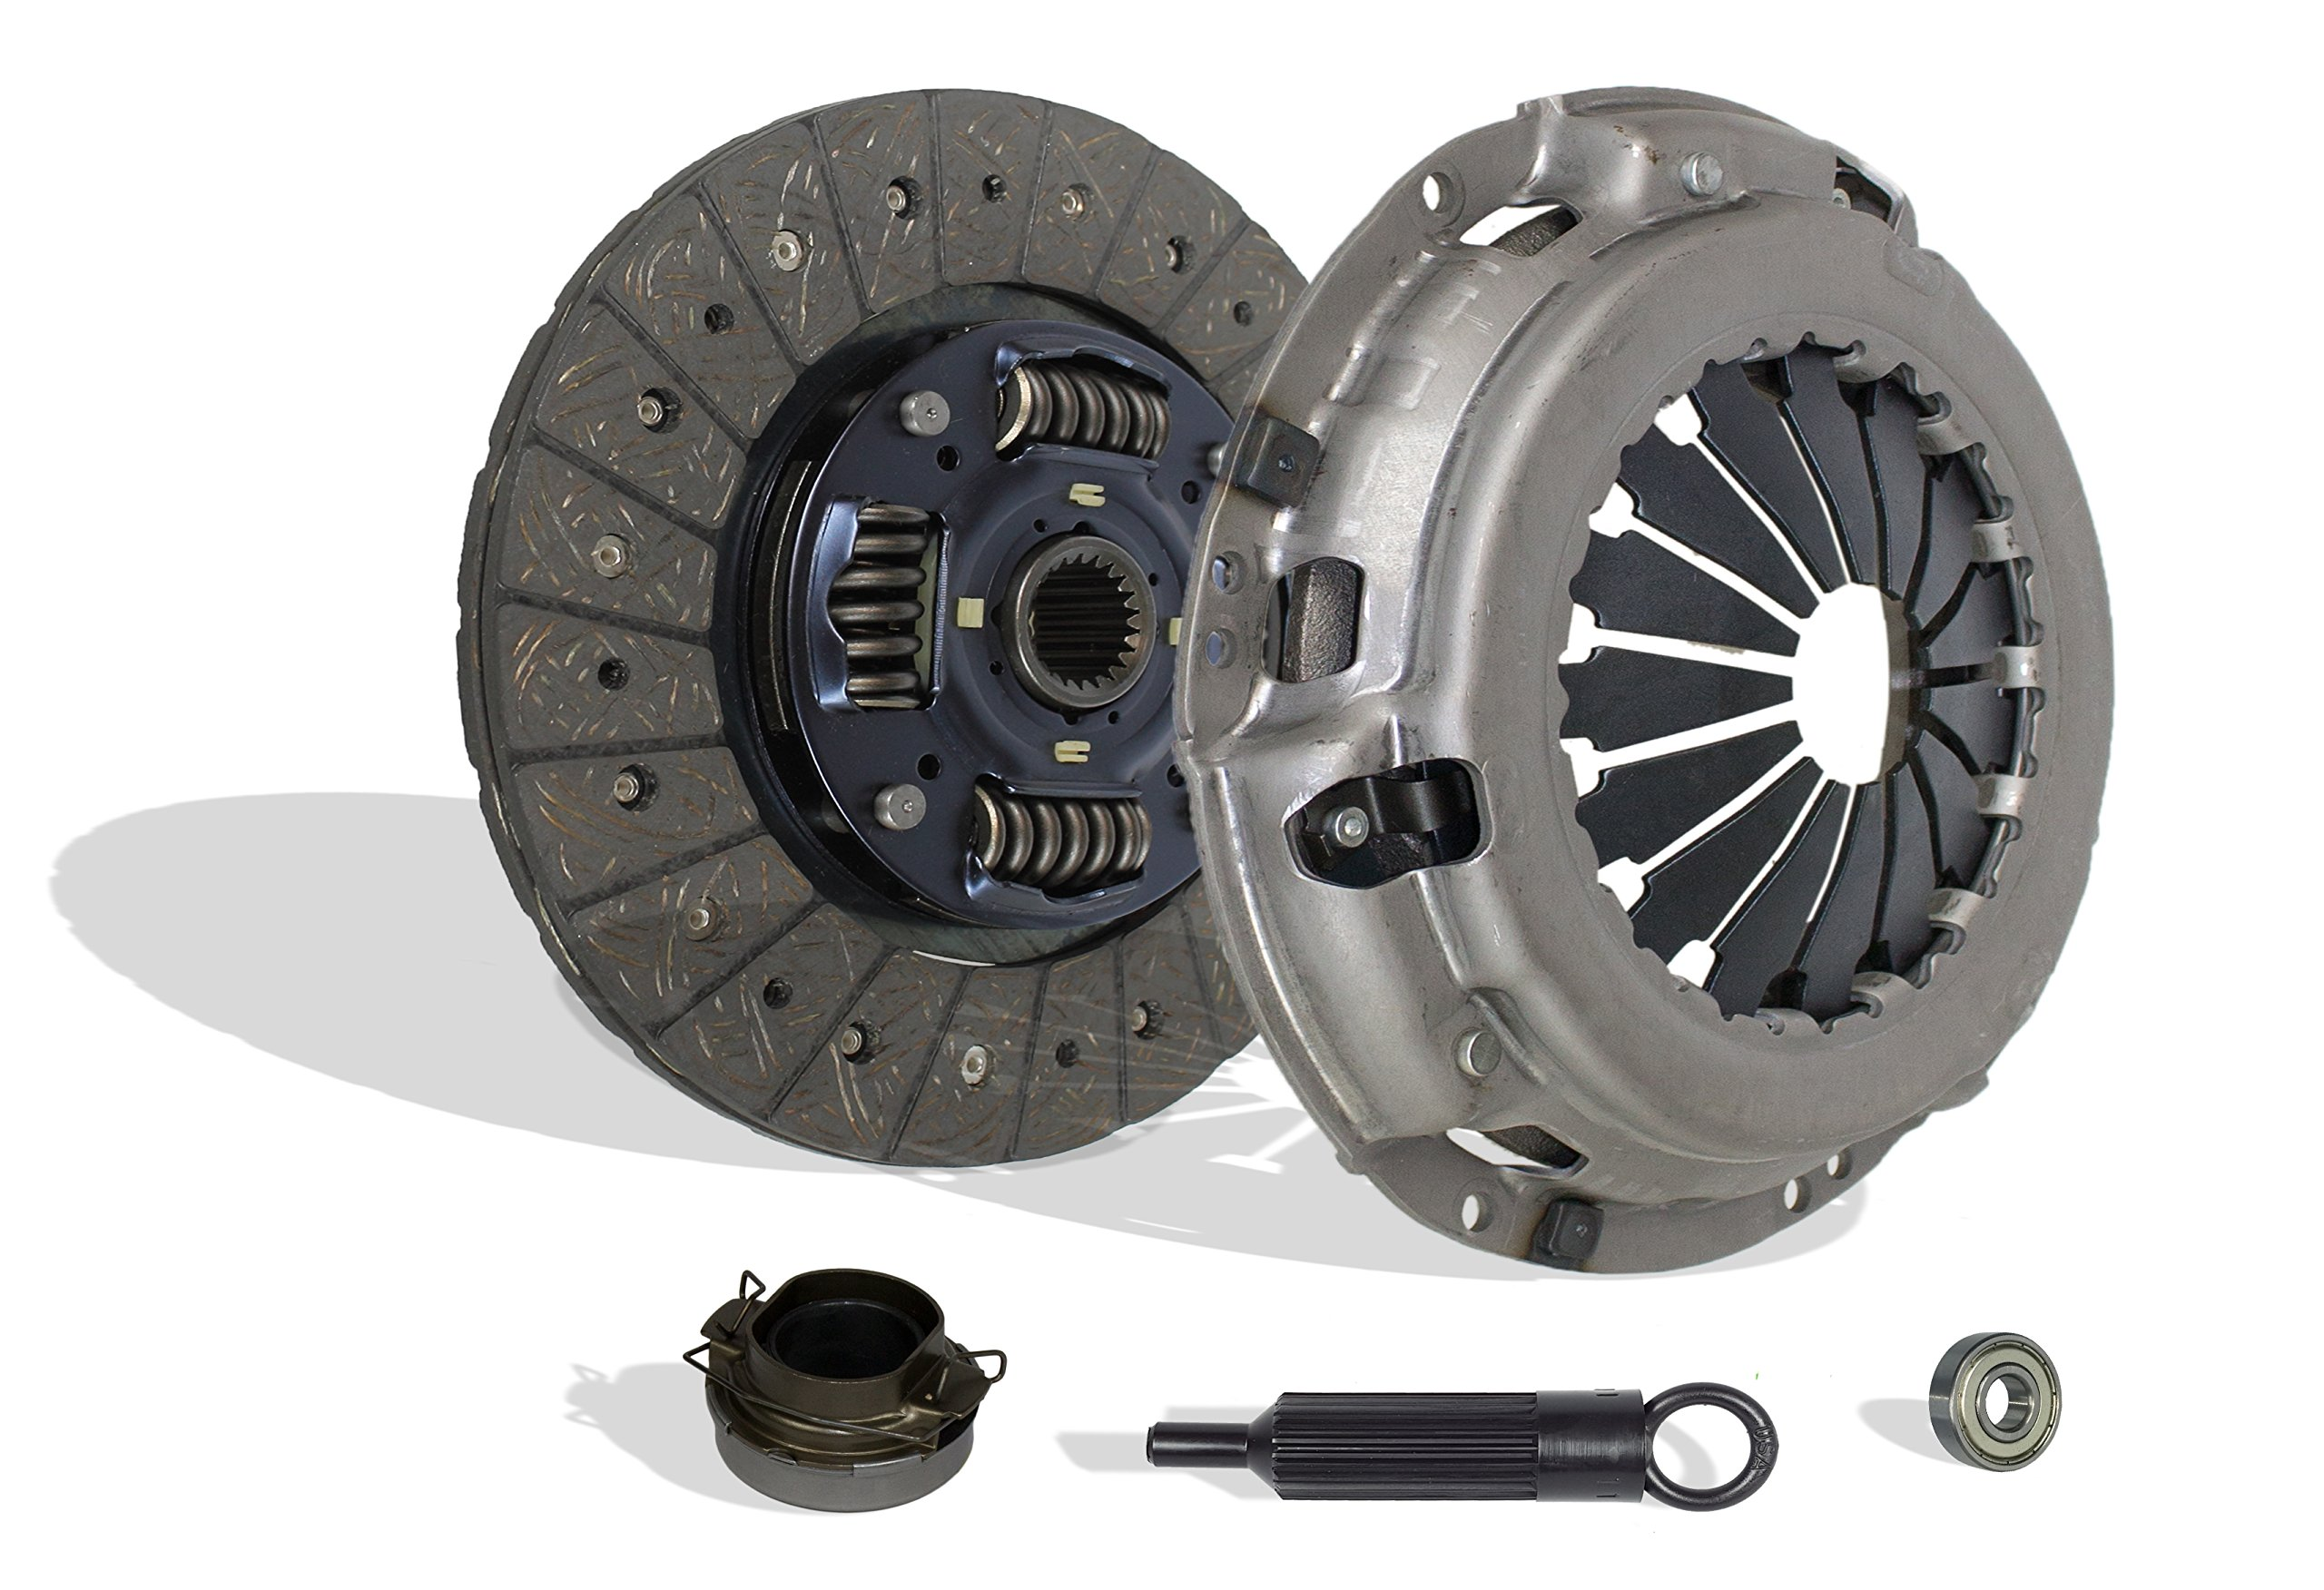 Clutch Kit Works With Toyota Pickup 4Runner T100 Sr5 Dlx Base Cab Pickup 2-Door 1988-1995 3.0L V6 SOHC (2WD; 4WD)